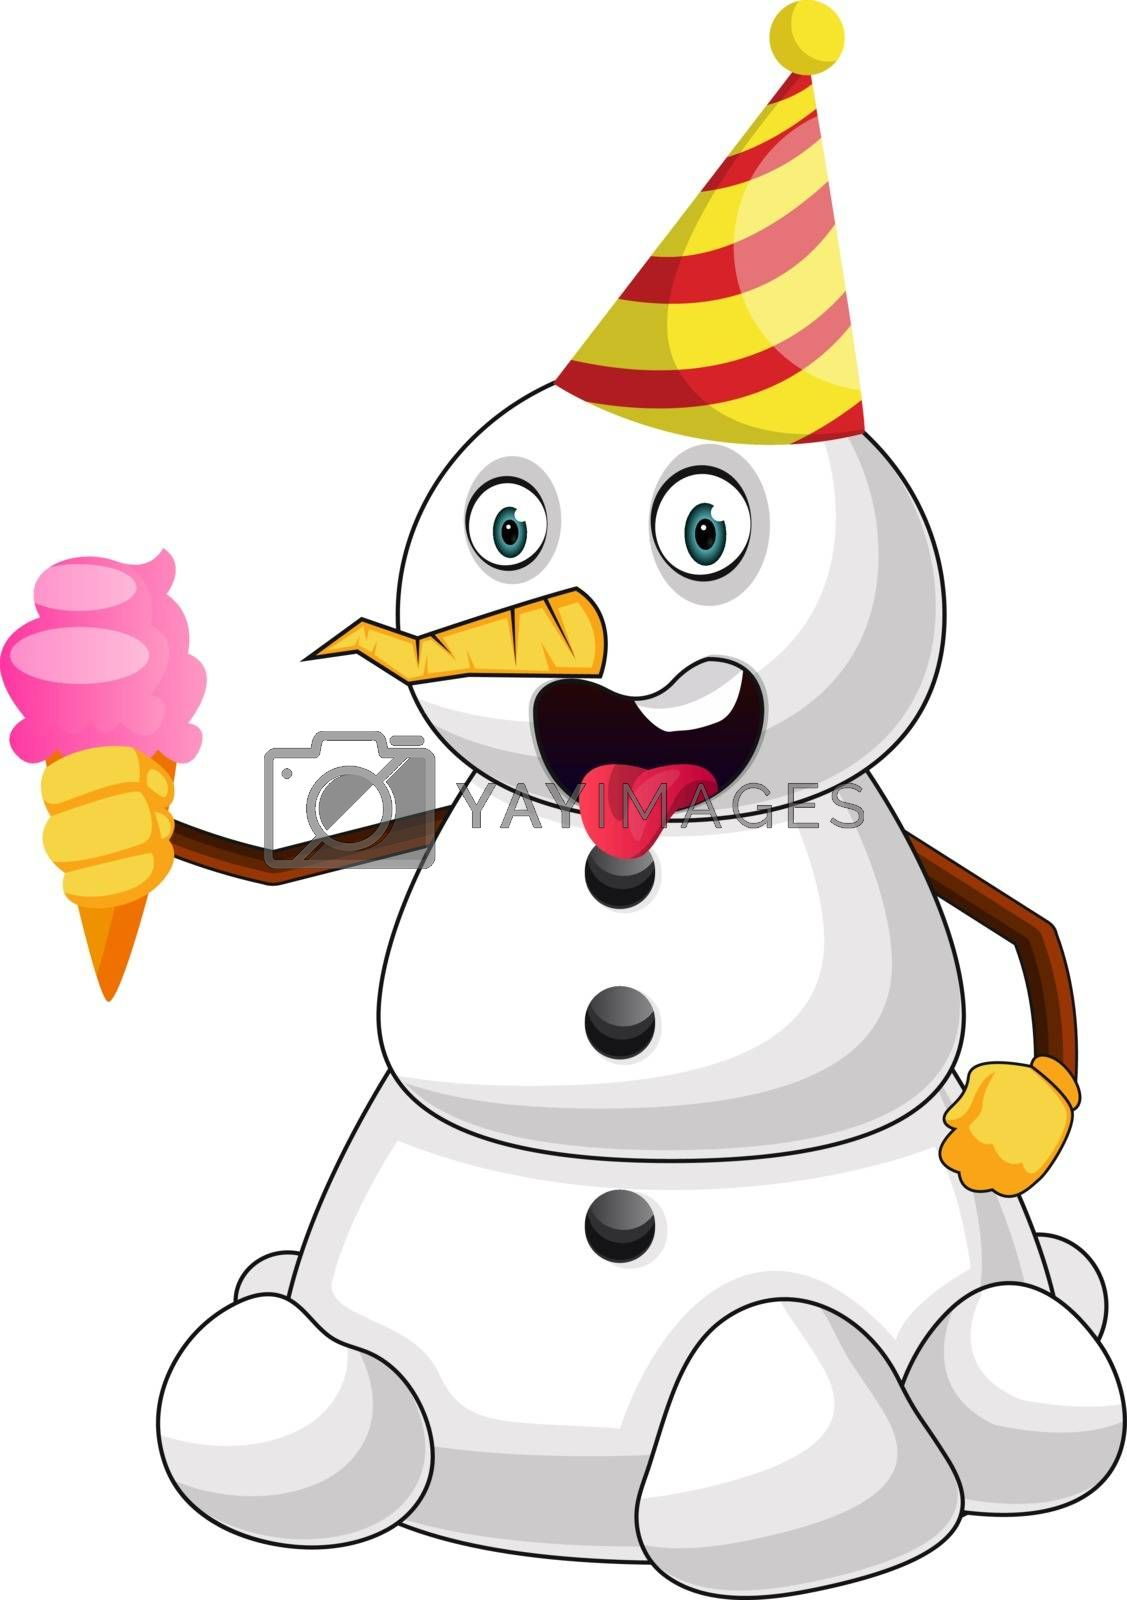 Royalty free image of Snowman with ice cream illustration vector on white background by Morphart